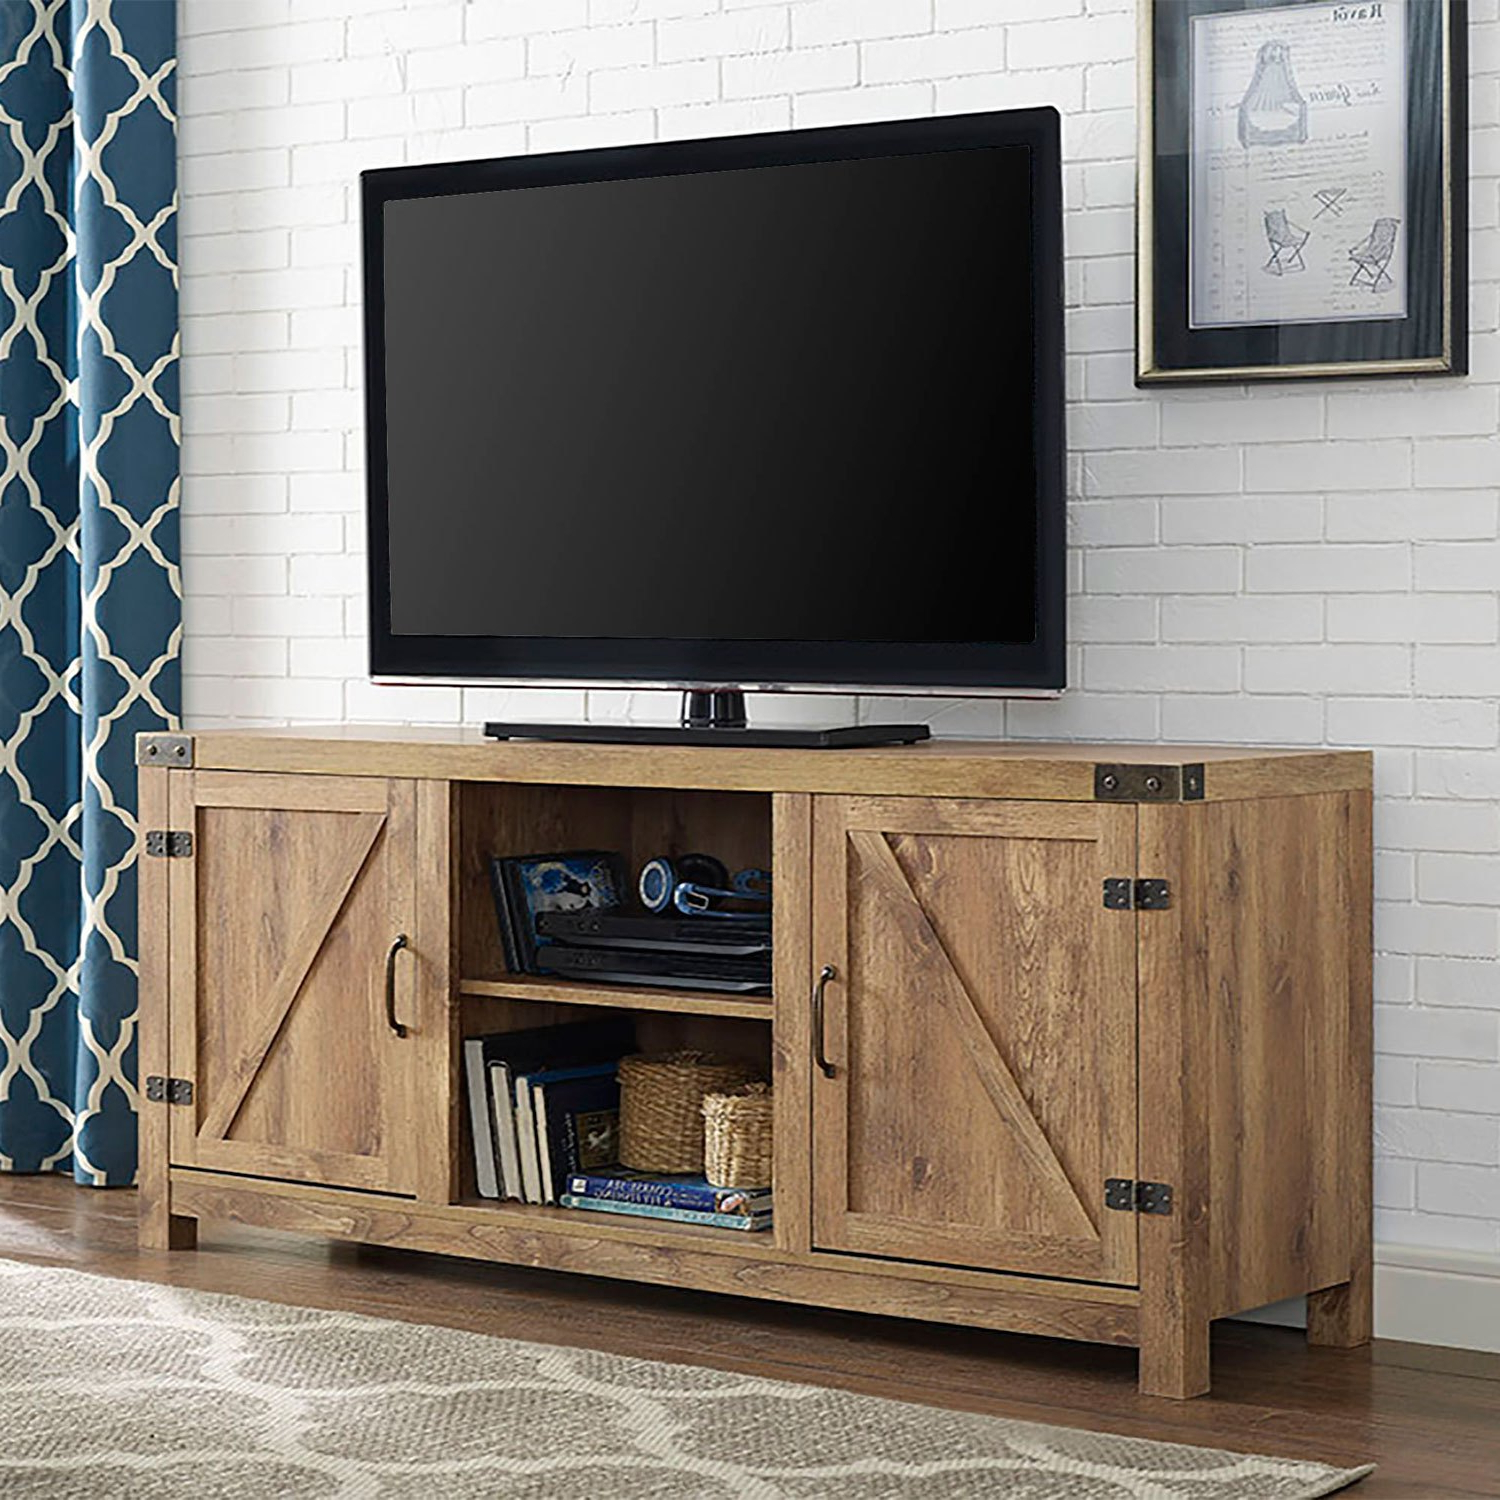 Tv Console | Canyon Creek 84 Inch Entertainment Console And Hutch For Oxford 84 Inch Tv Stands (View 19 of 20)